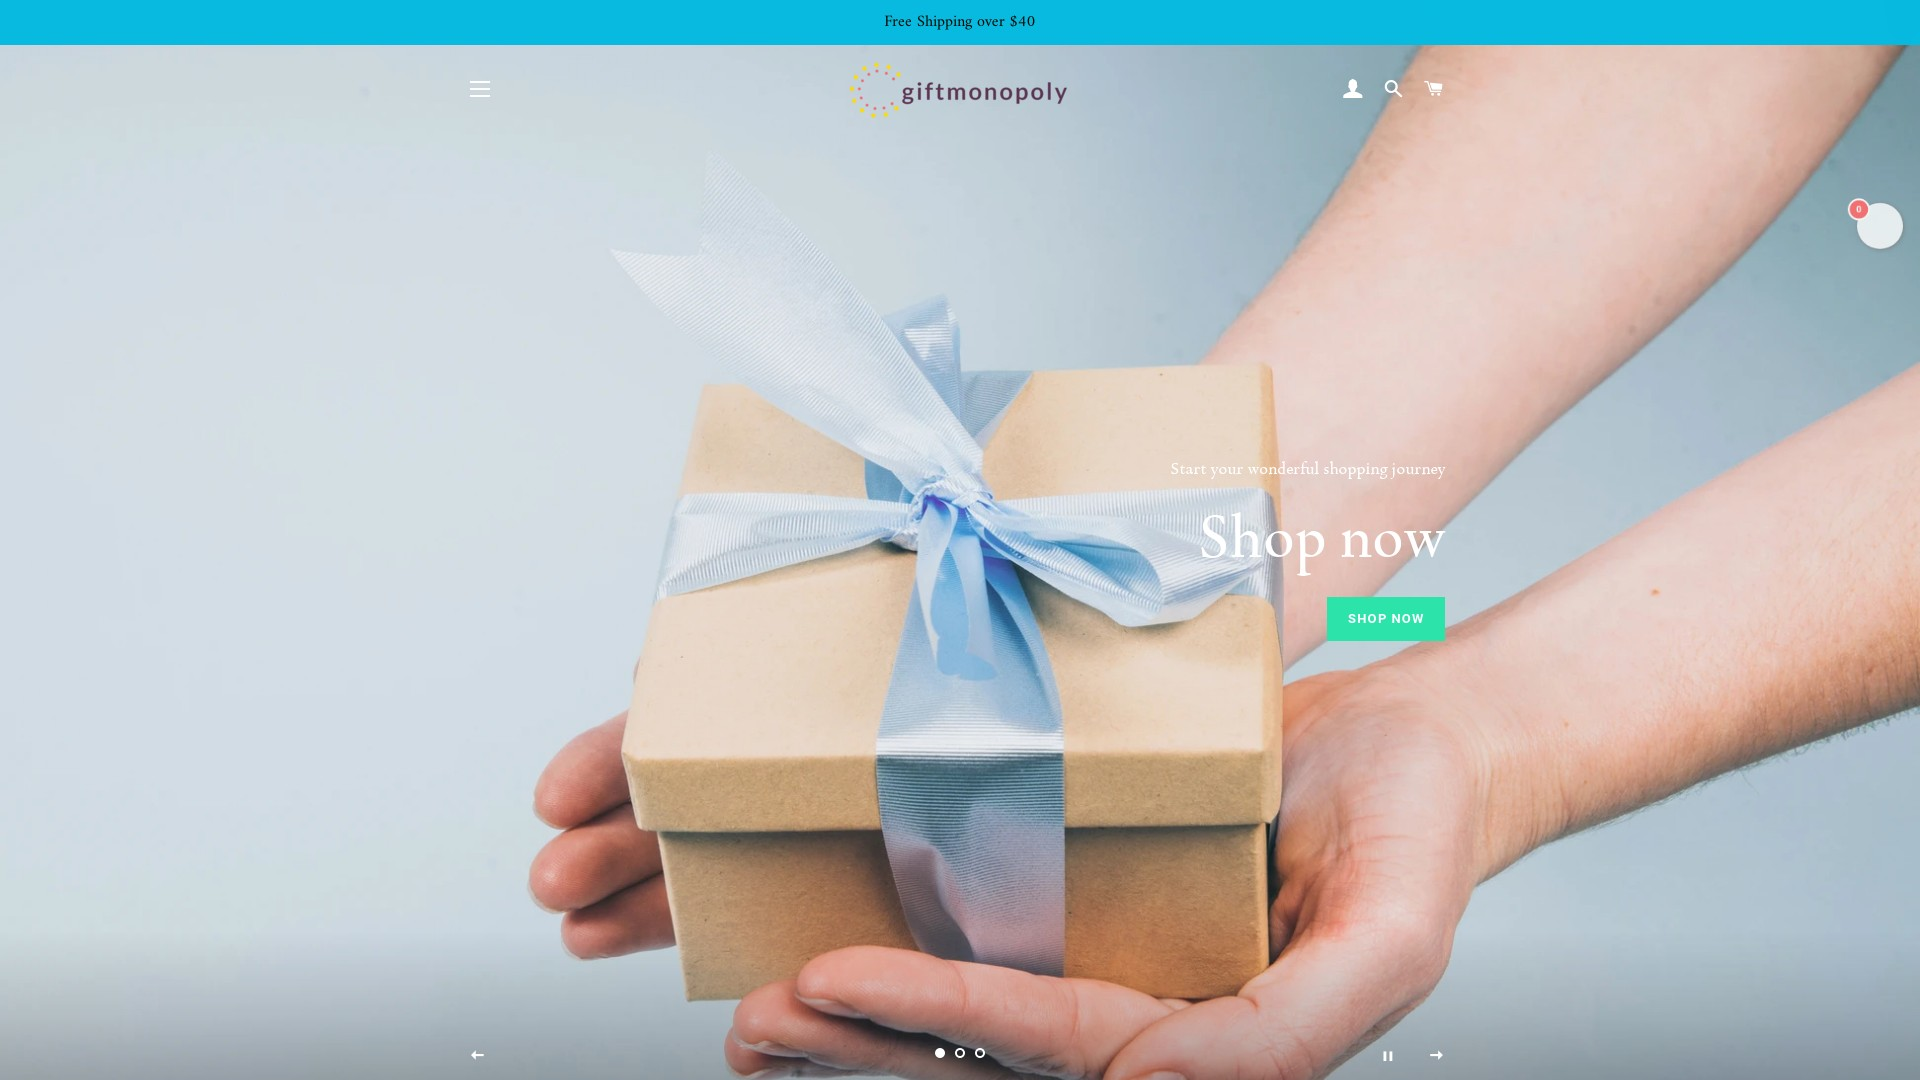 Is Giftmonopoly a Scam? Review of the Online Store